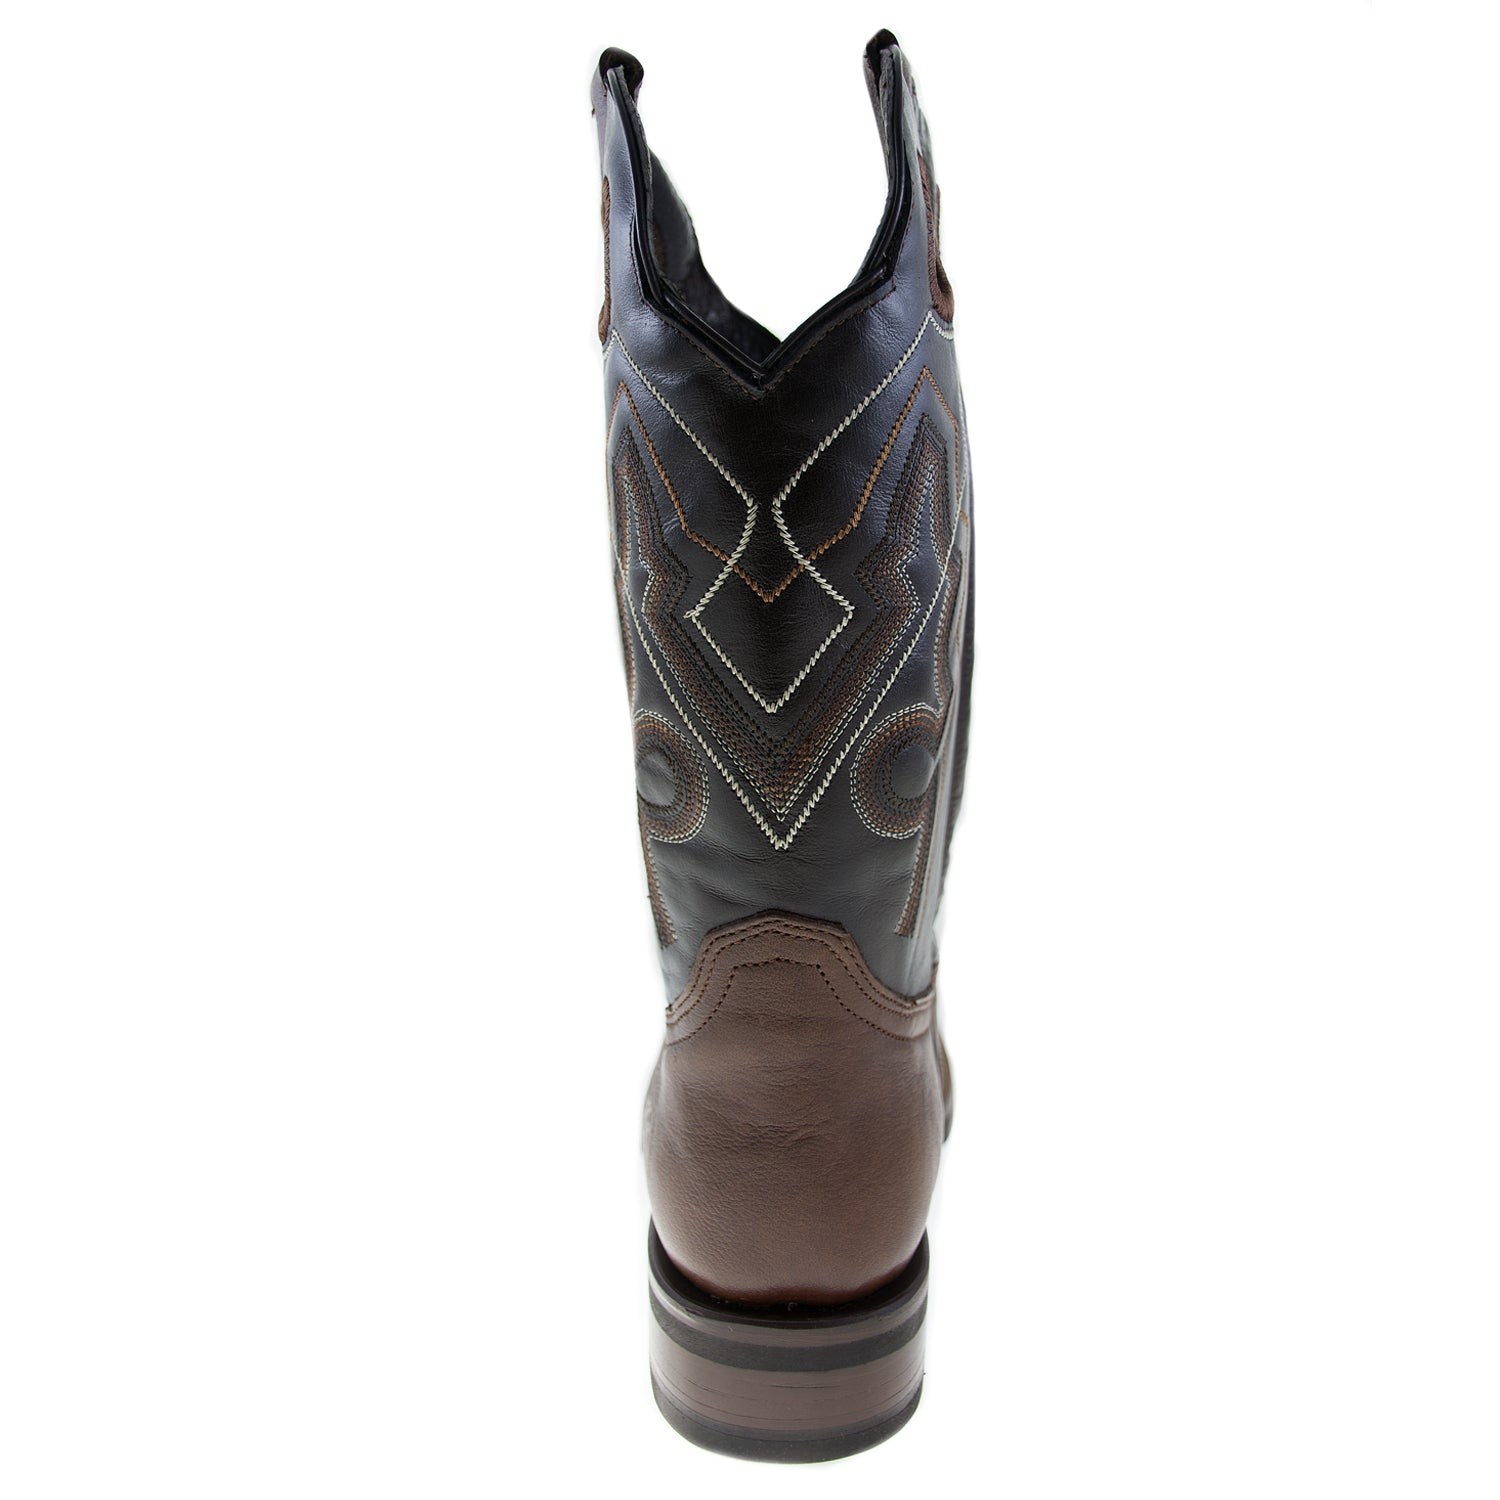 840c1ddf6a7 Men's brown leather western cowboy boot – True Quality Shoes